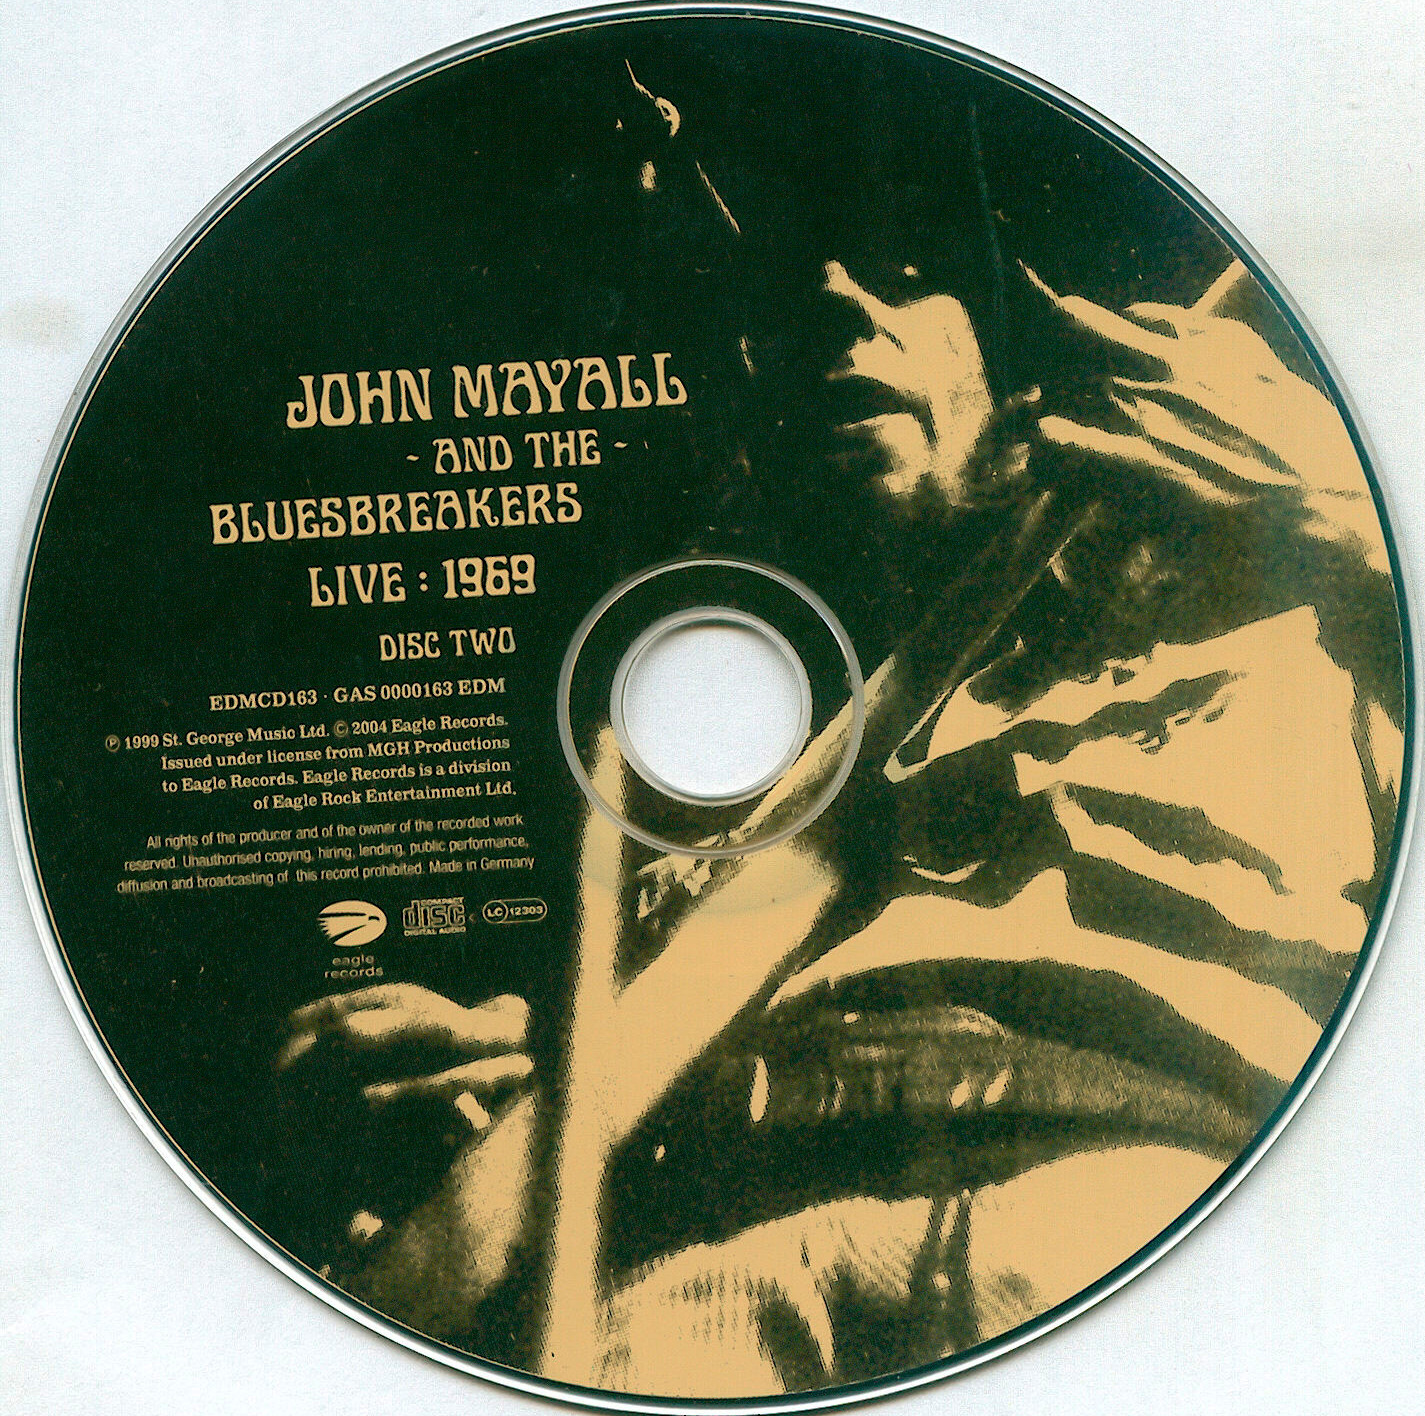 John Mayall and The Bluesbreakers - Live 1969 - CD (2-2)